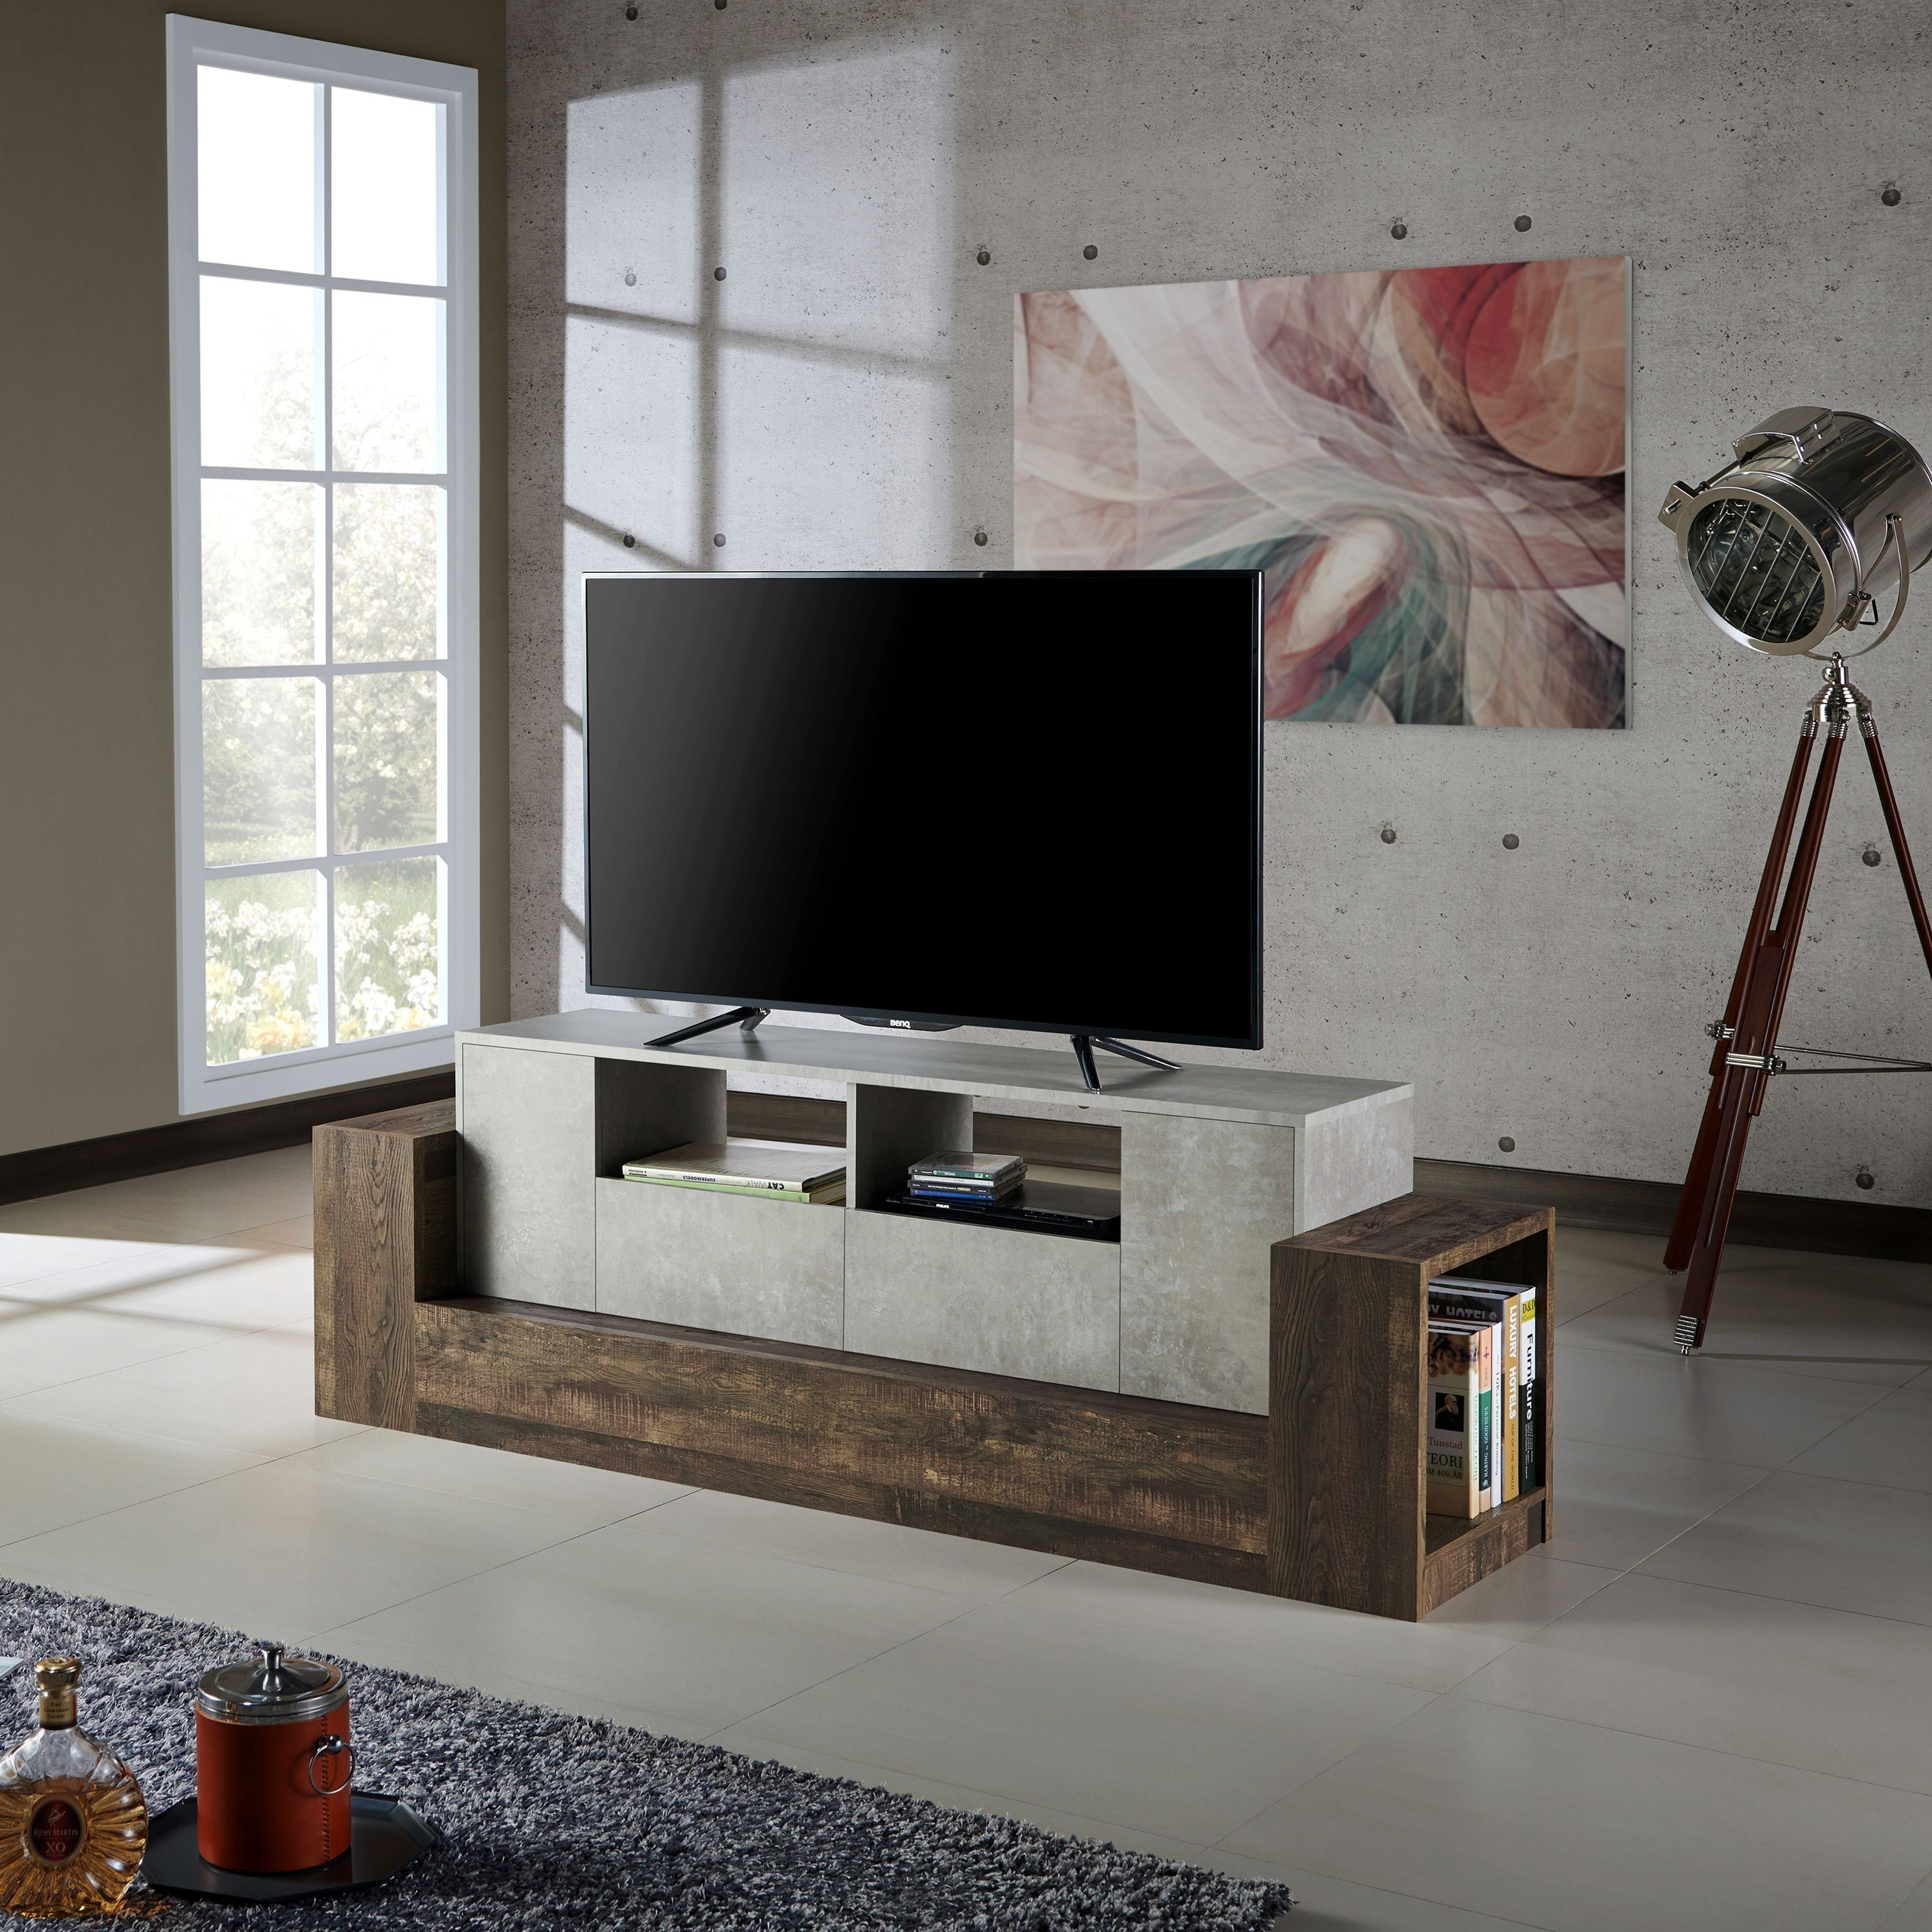 Shop furniture of america zeddy industrial faux concrete tv stand on sale free shipping today overstock com 24170446